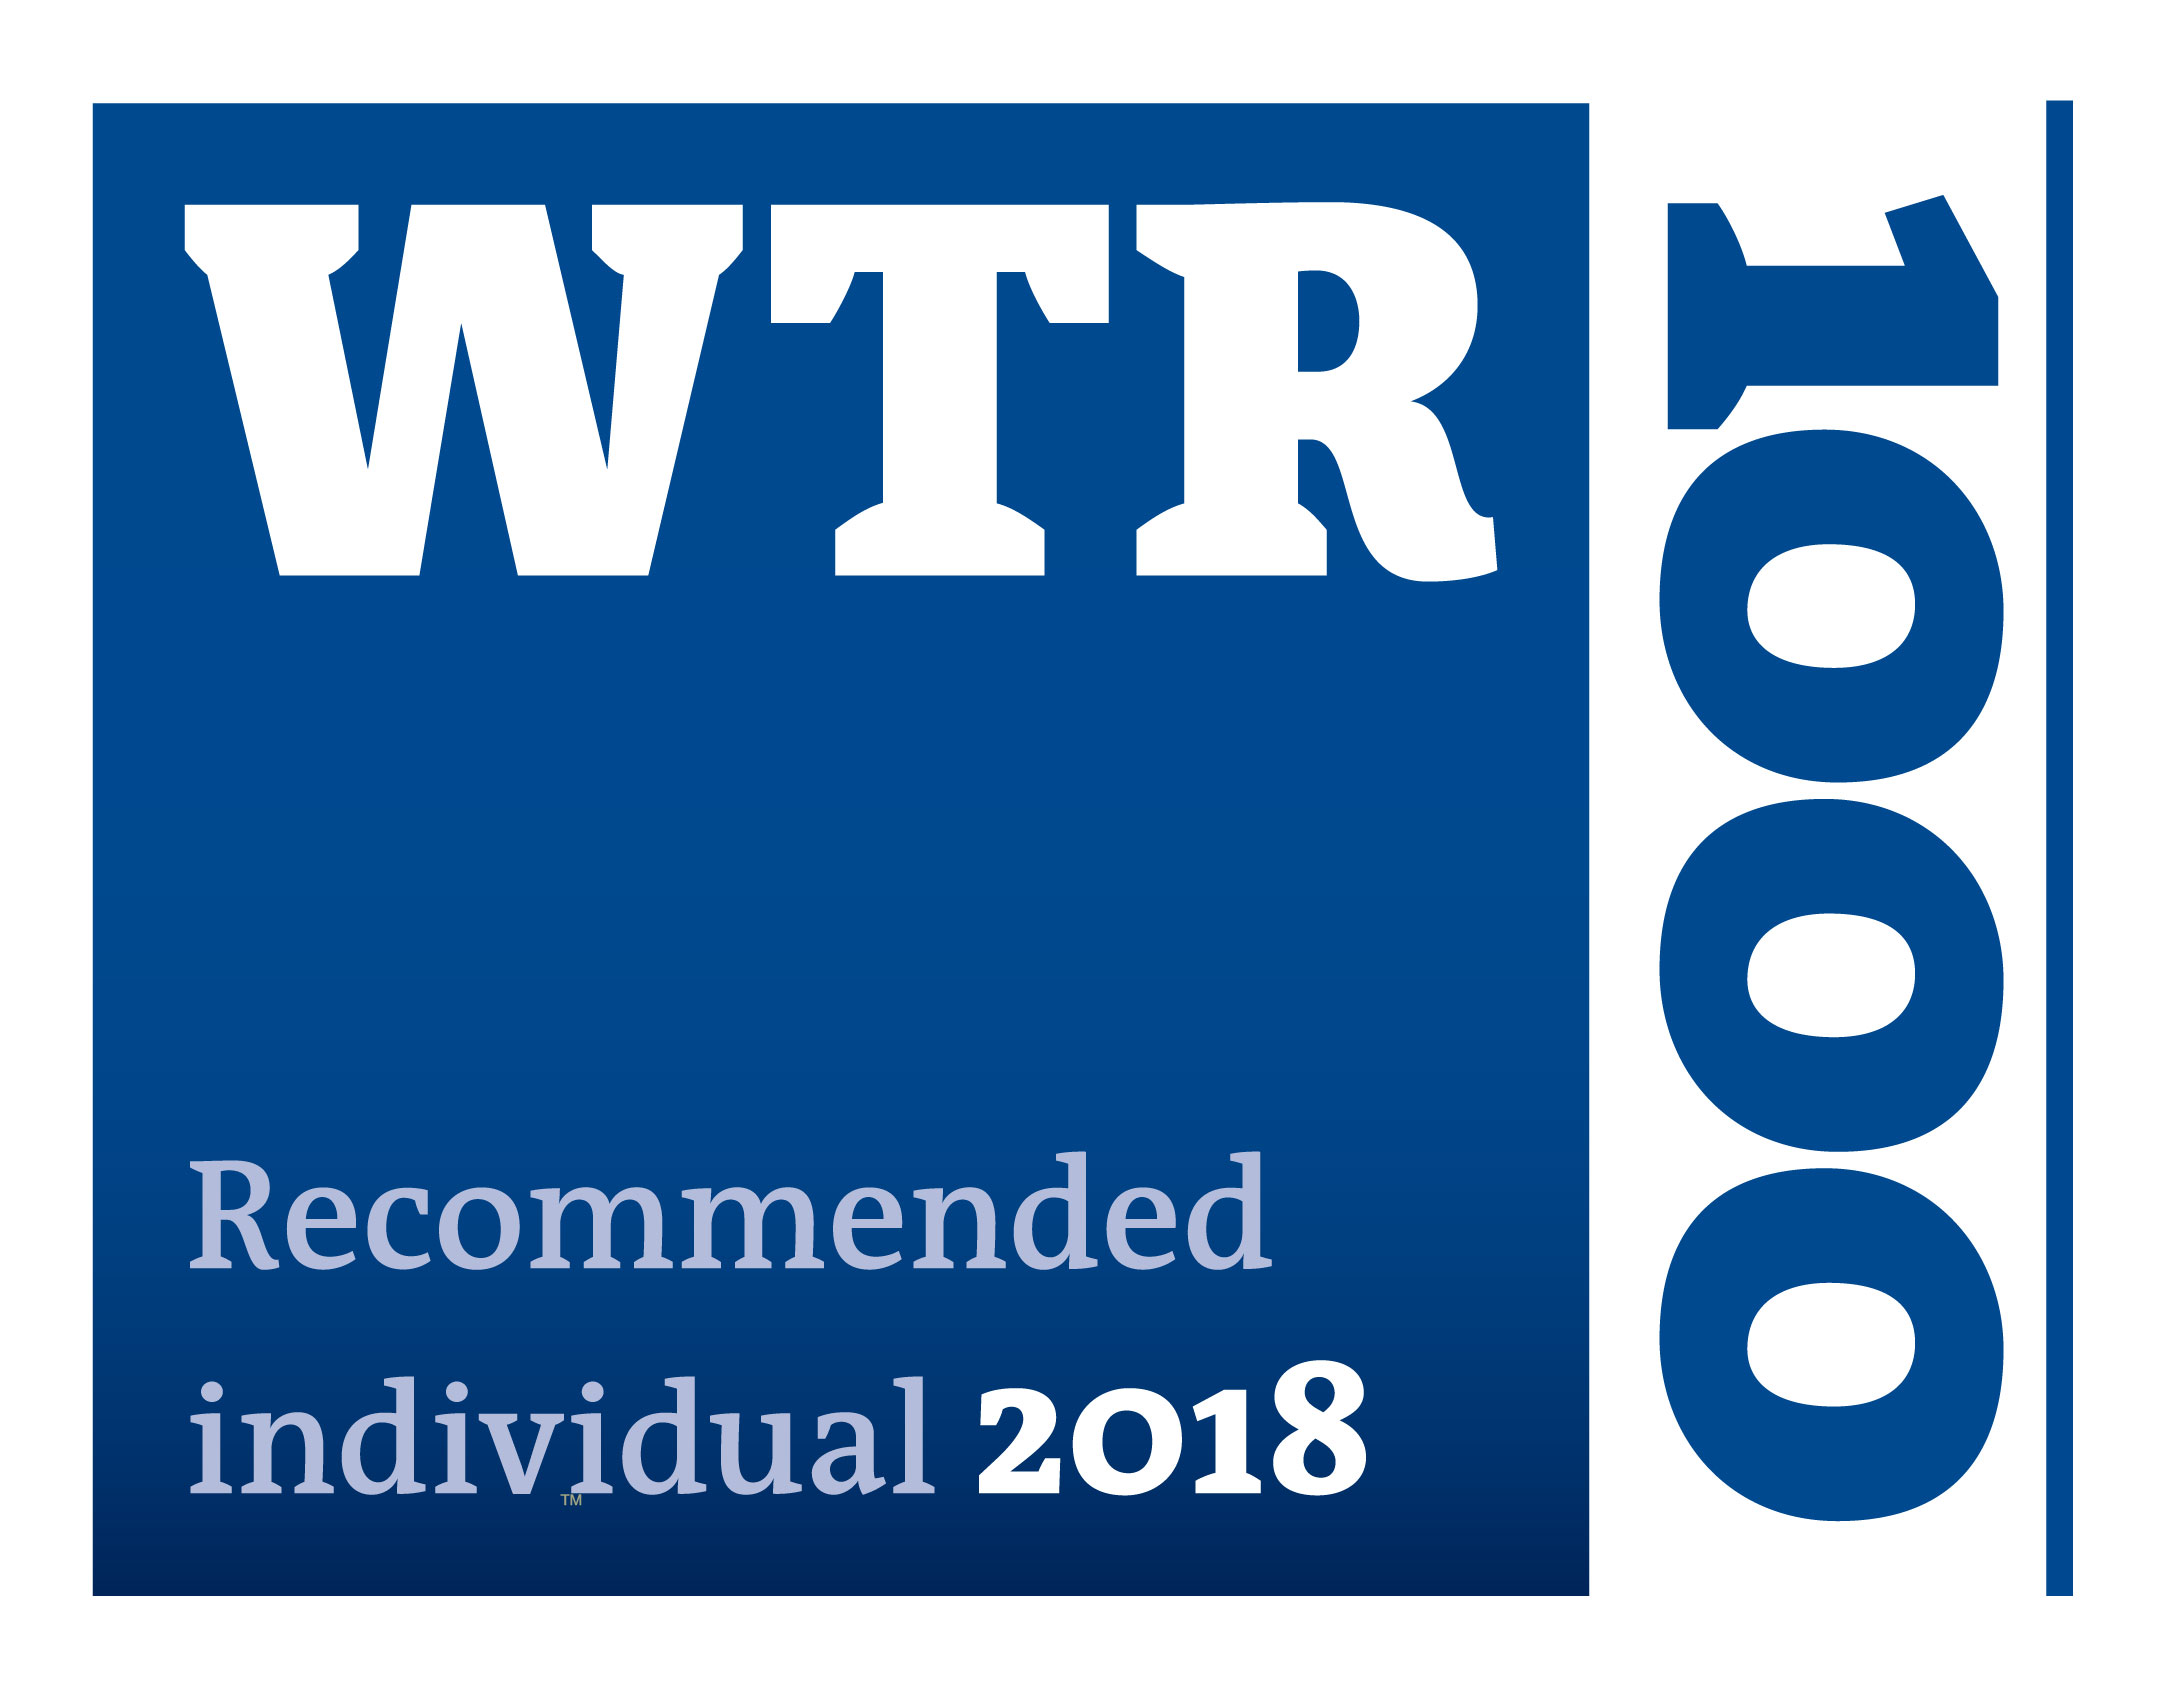 WTR 1000 recommended-individual-2018.jpg